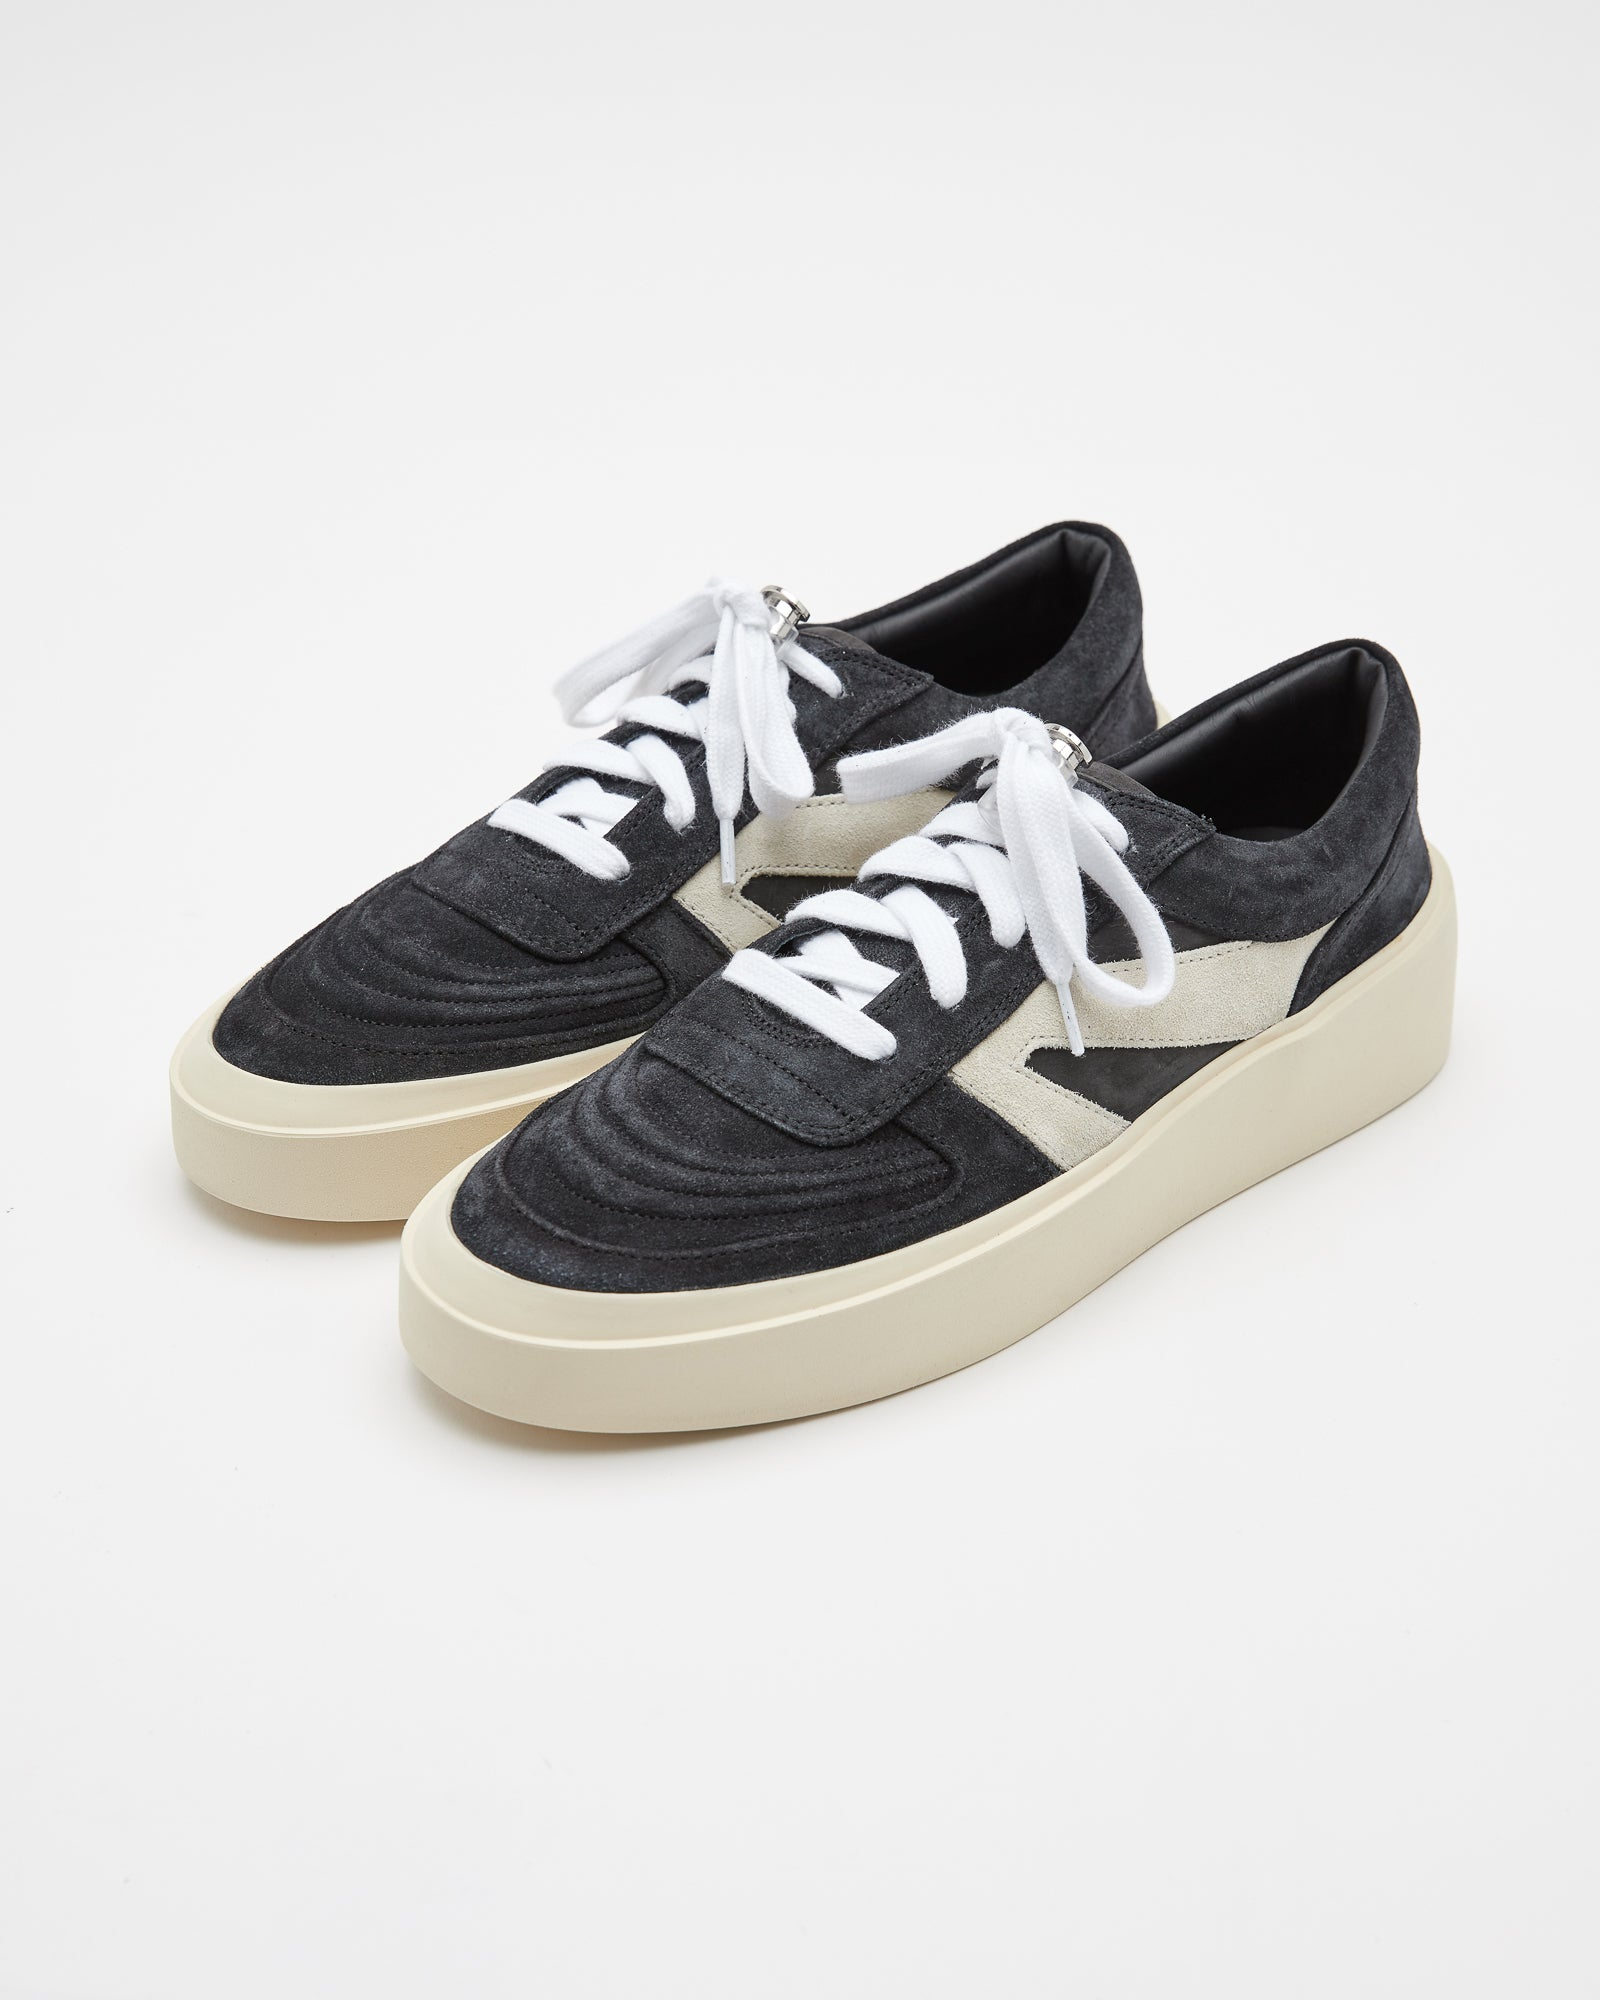 Skate Low in Black/Gray